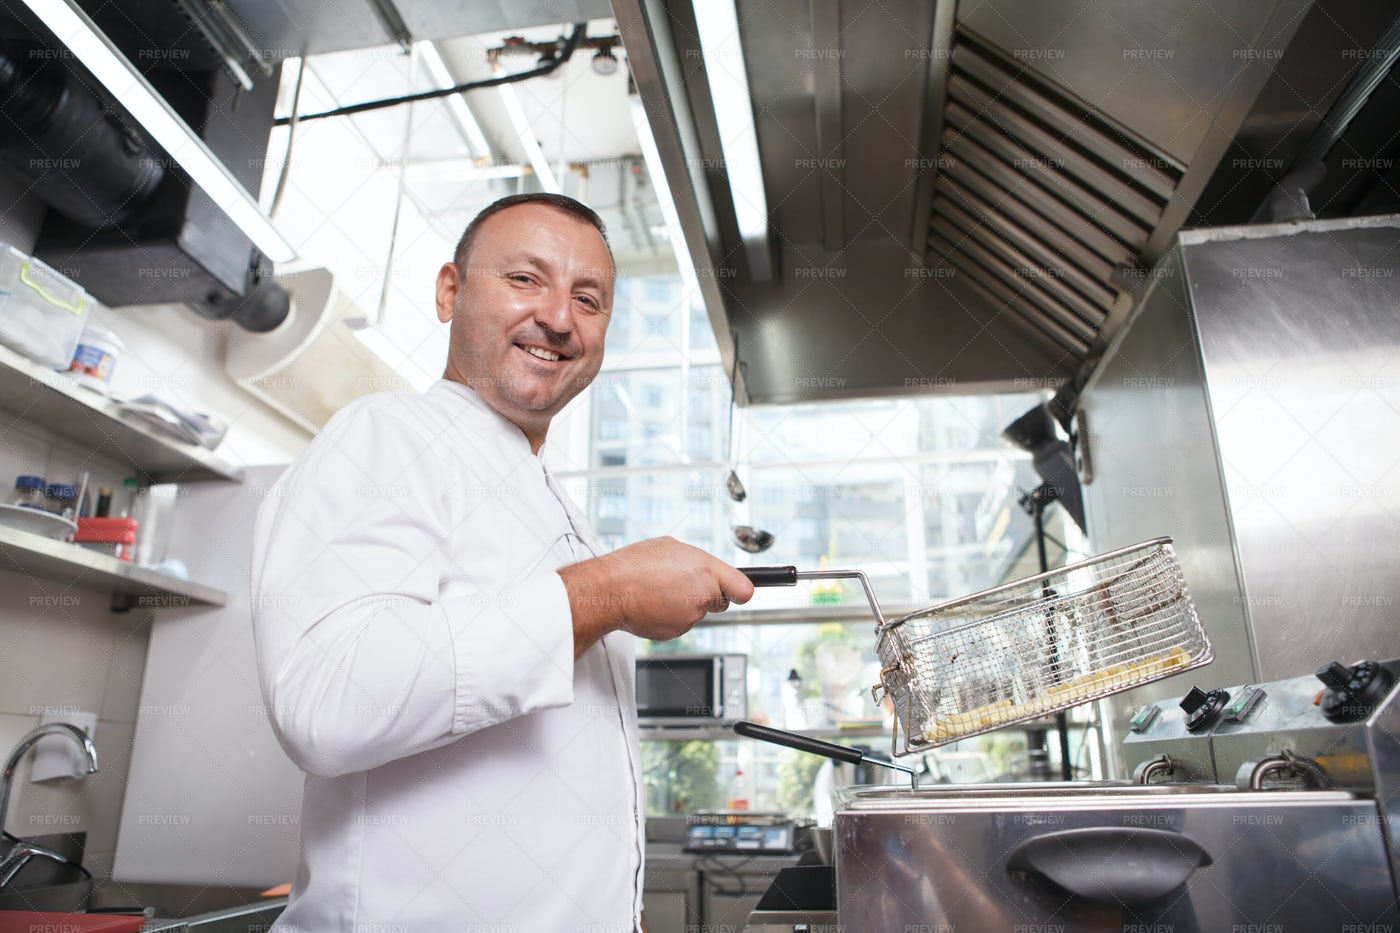 Chef Smiling While Cooking: Stock Photos